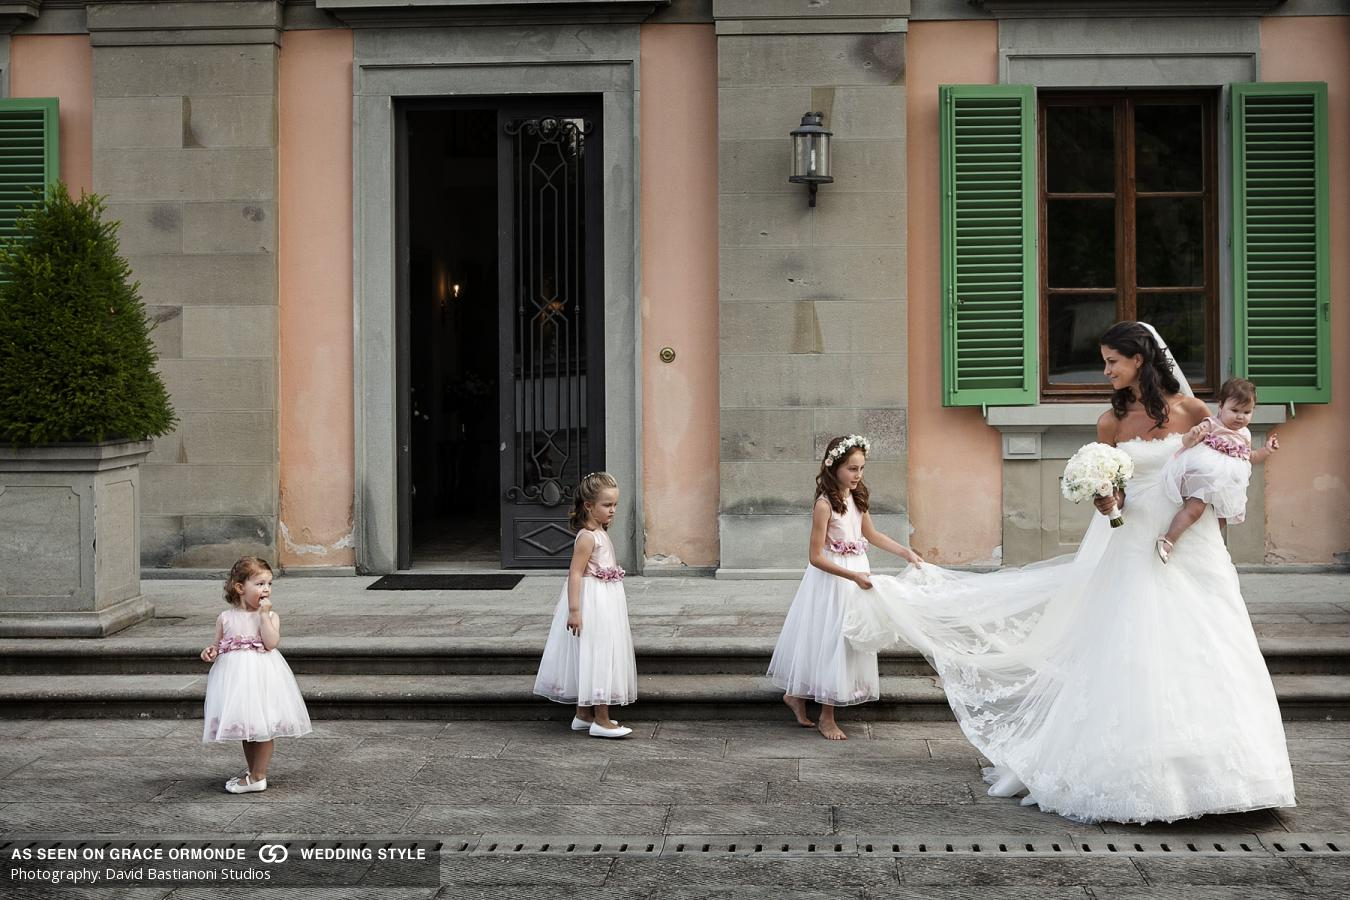 david-bastianoni-wedding-2015-04_1 - 2 :: Grace Ormonde :: Luxury wedding photography - 1 :: david-bastianoni-wedding-2015-04_1 - 2